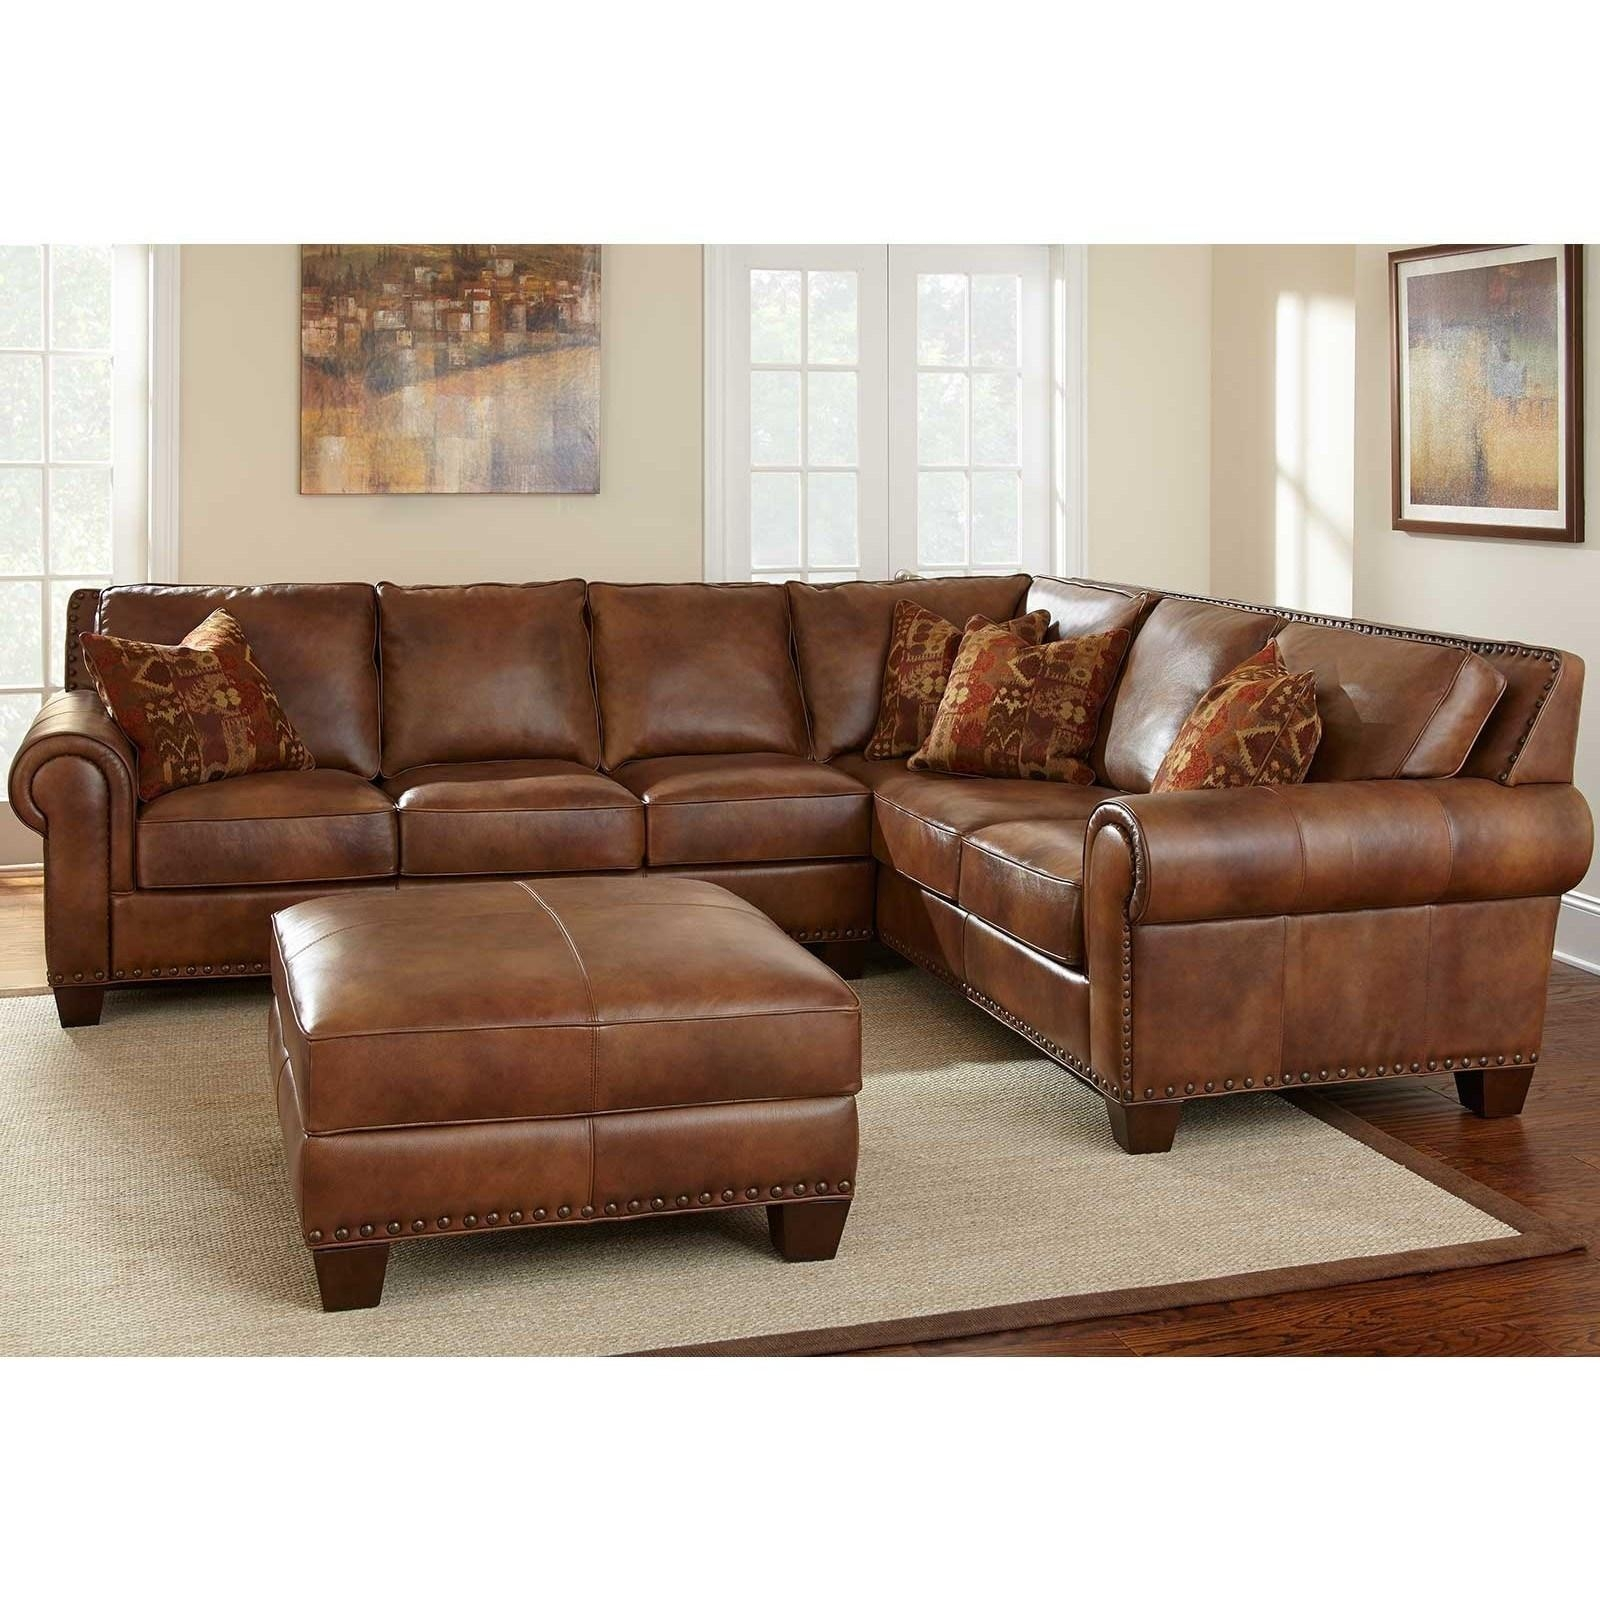 Lazy Boy Sectionals >> 20 Best Collection of Used Sectionals | Sofa Ideas